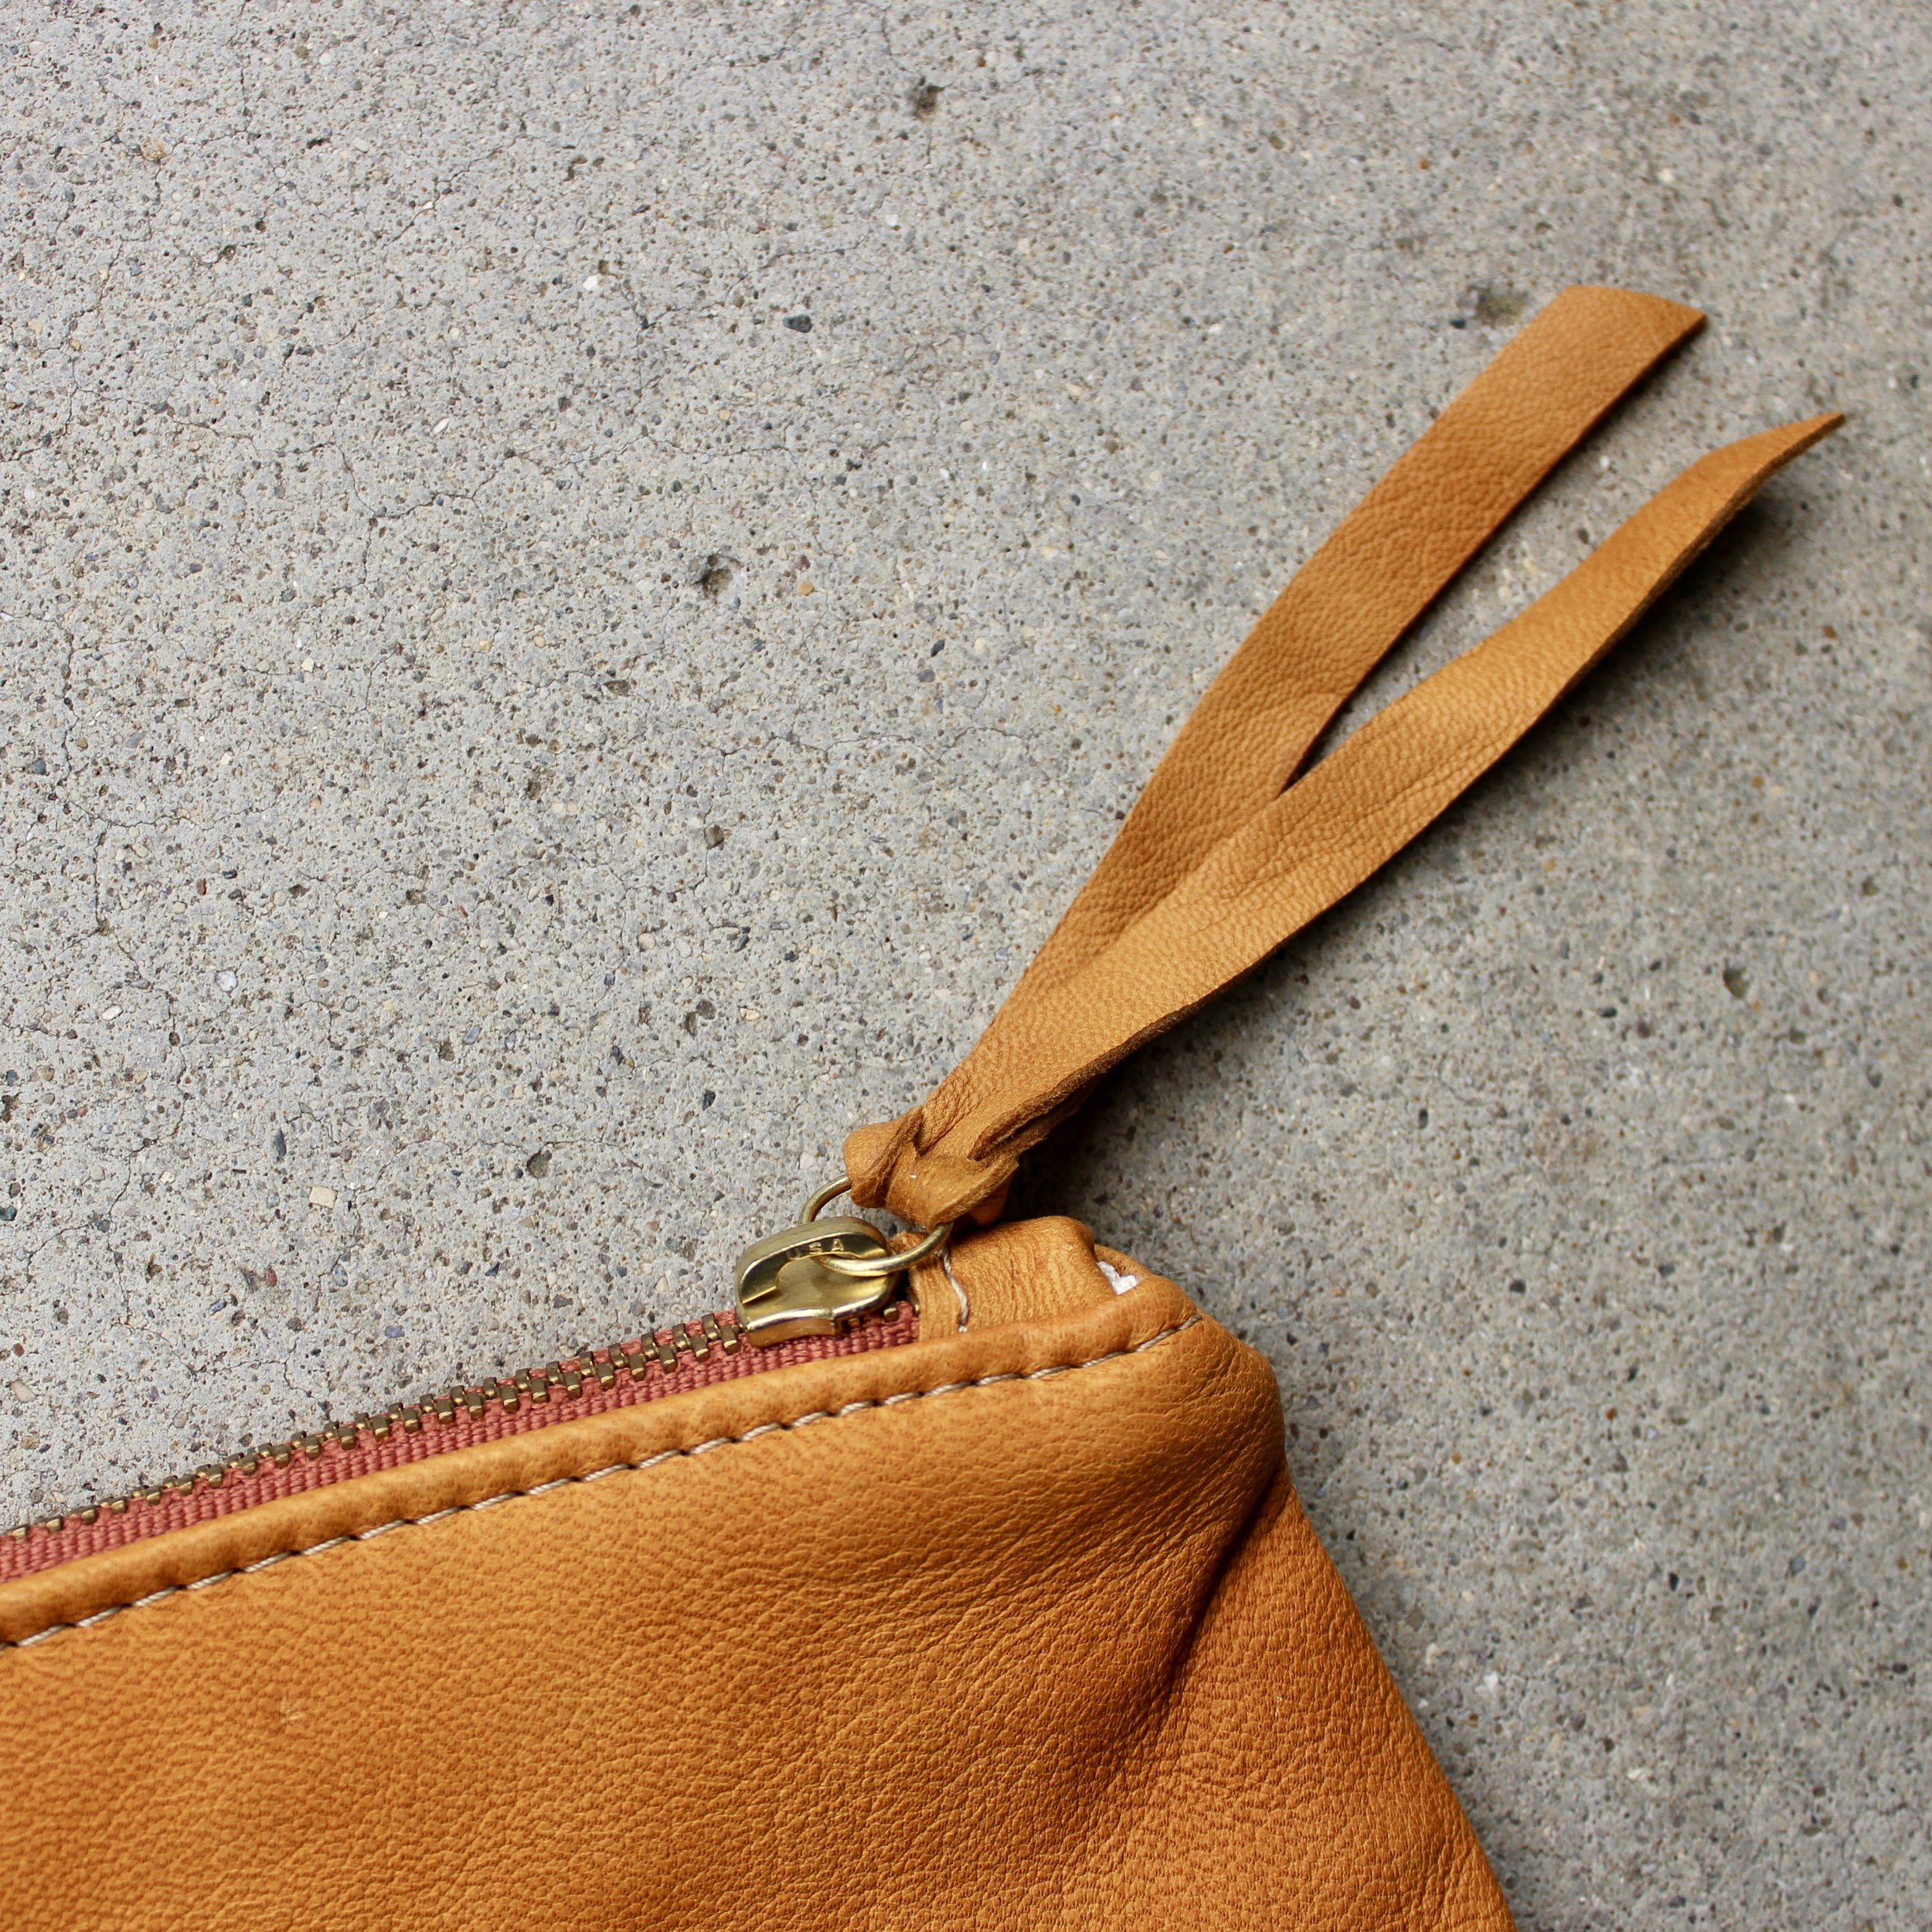 tan leather pouch close up.jpg